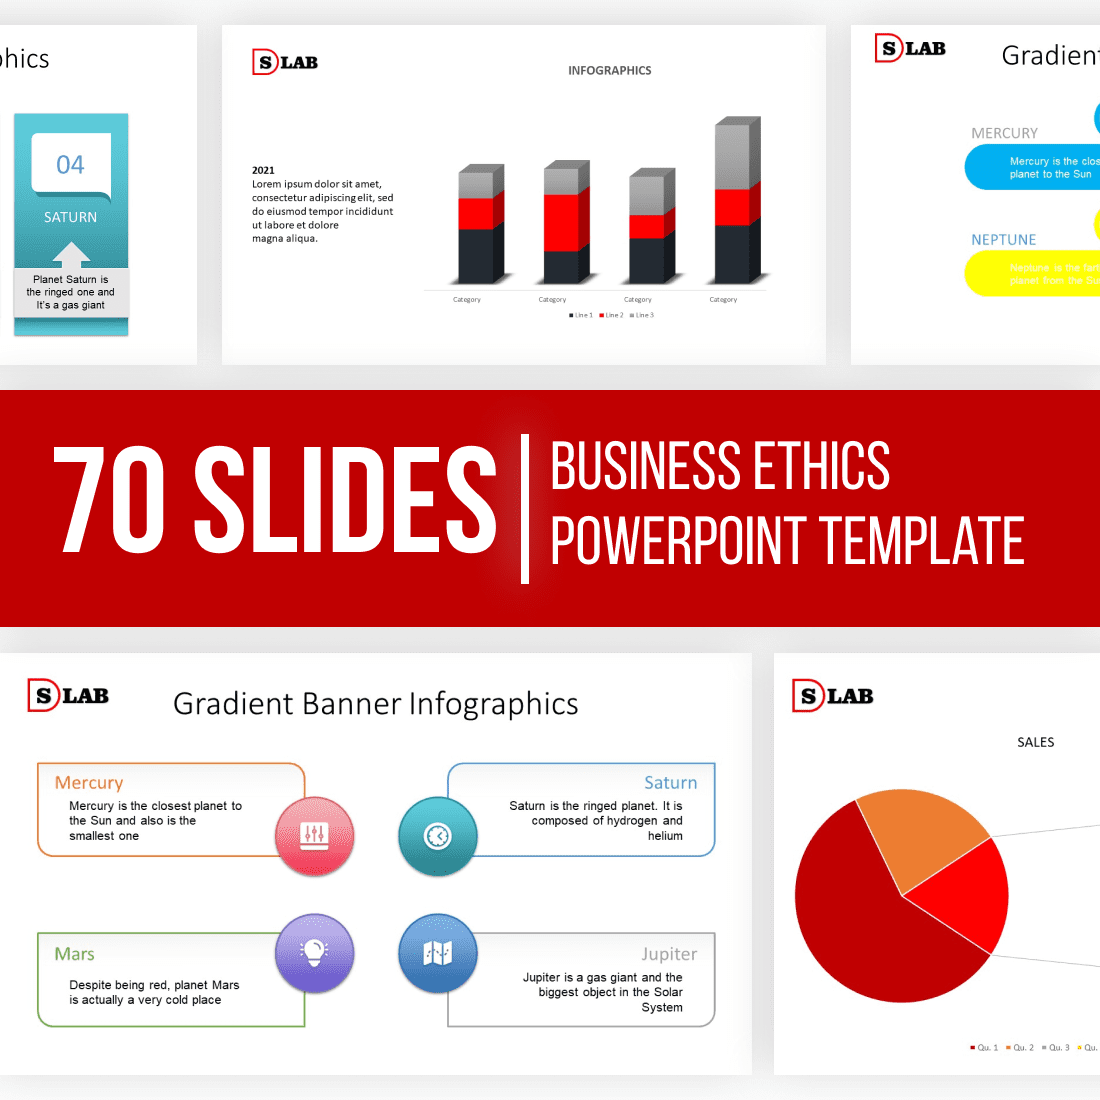 Business Ethics Powerpoint Template